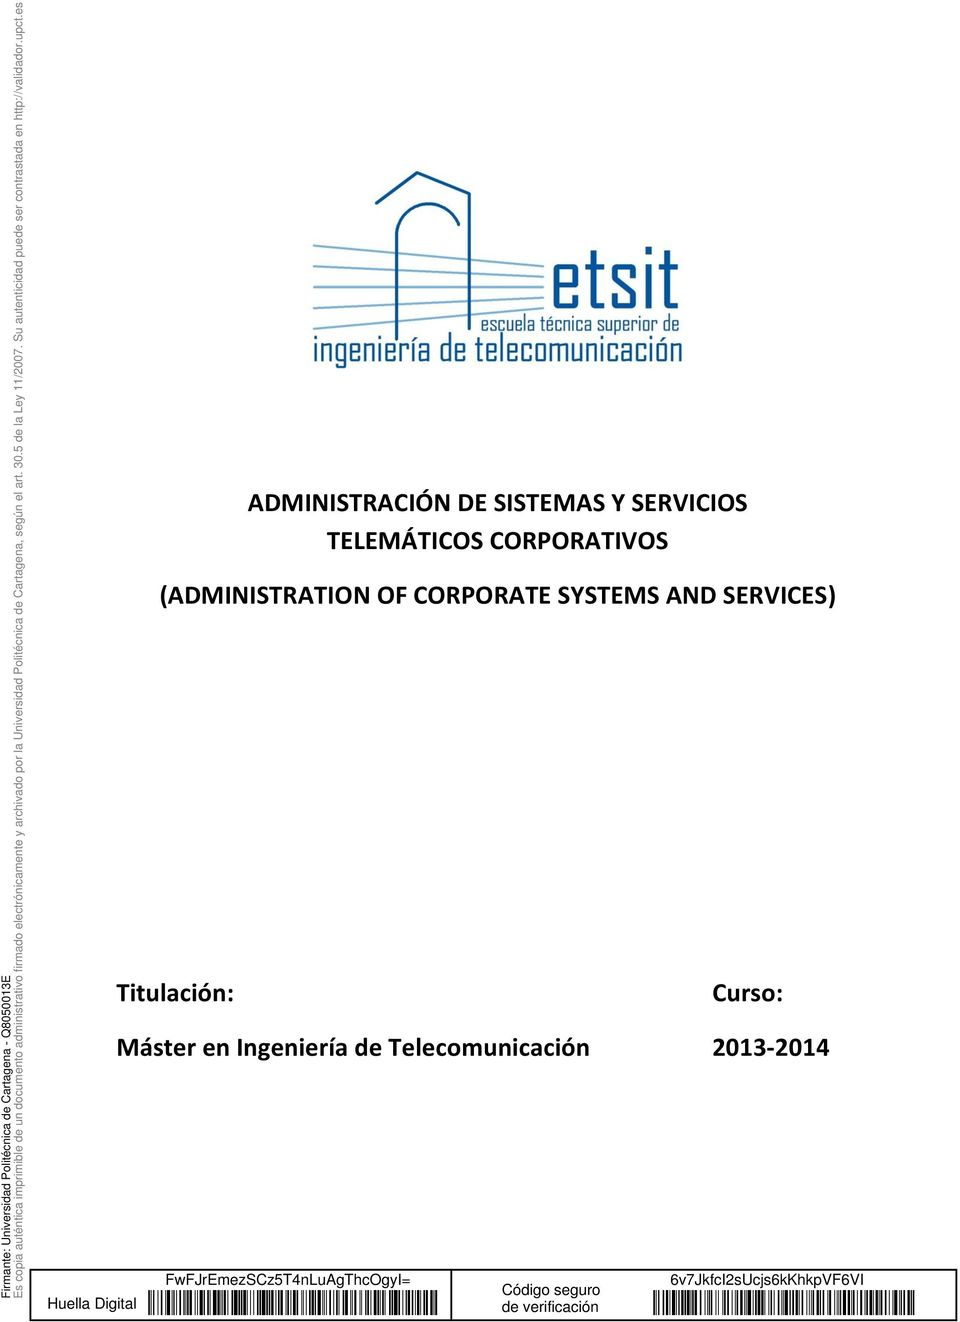 CORPORATE SYSTEMS AND SERVICES) Titulación: